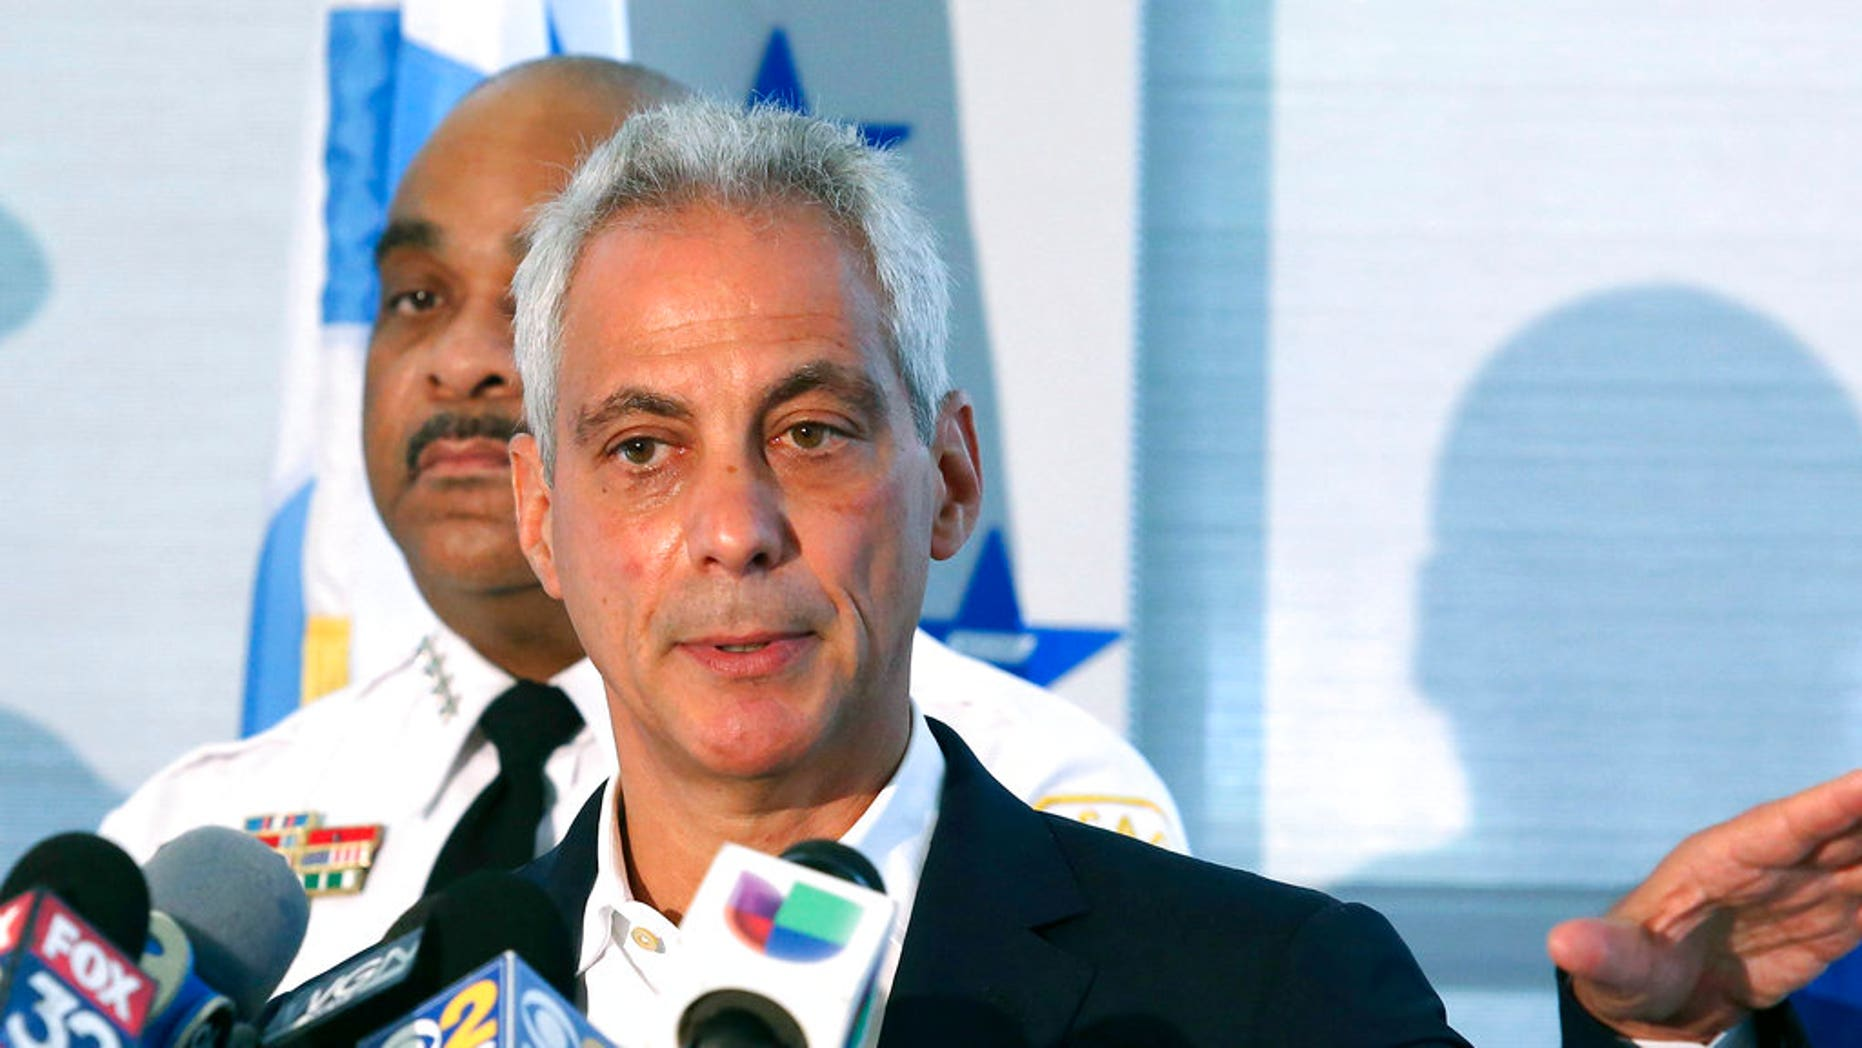 Mayor Rahm Emanuel speaks at a news conference in Chicago, Aug. 6, 2018. (Associated Press)